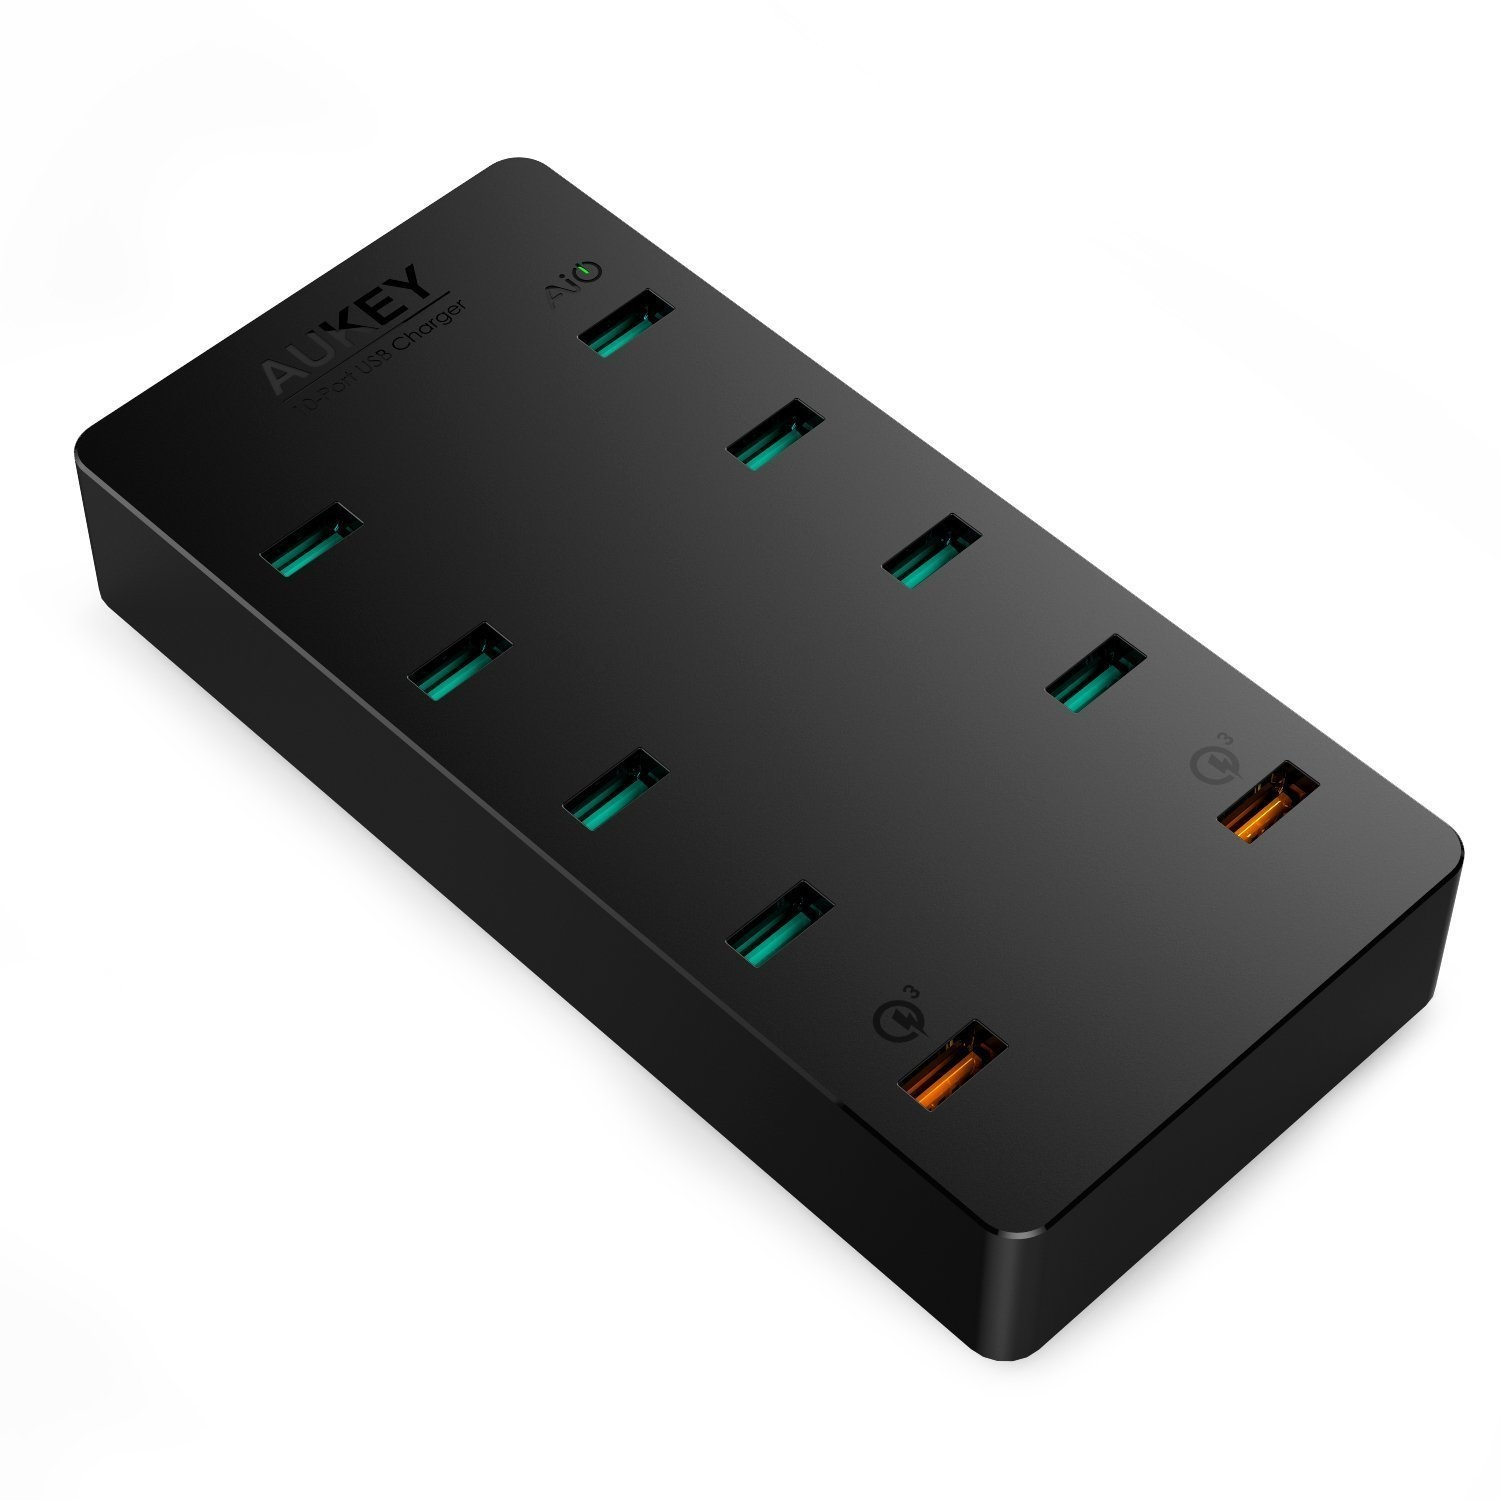 Aukey 10-Poort Oplaadstation met Quick Charge 3.0 - 70 Watt oplader - PA-T8